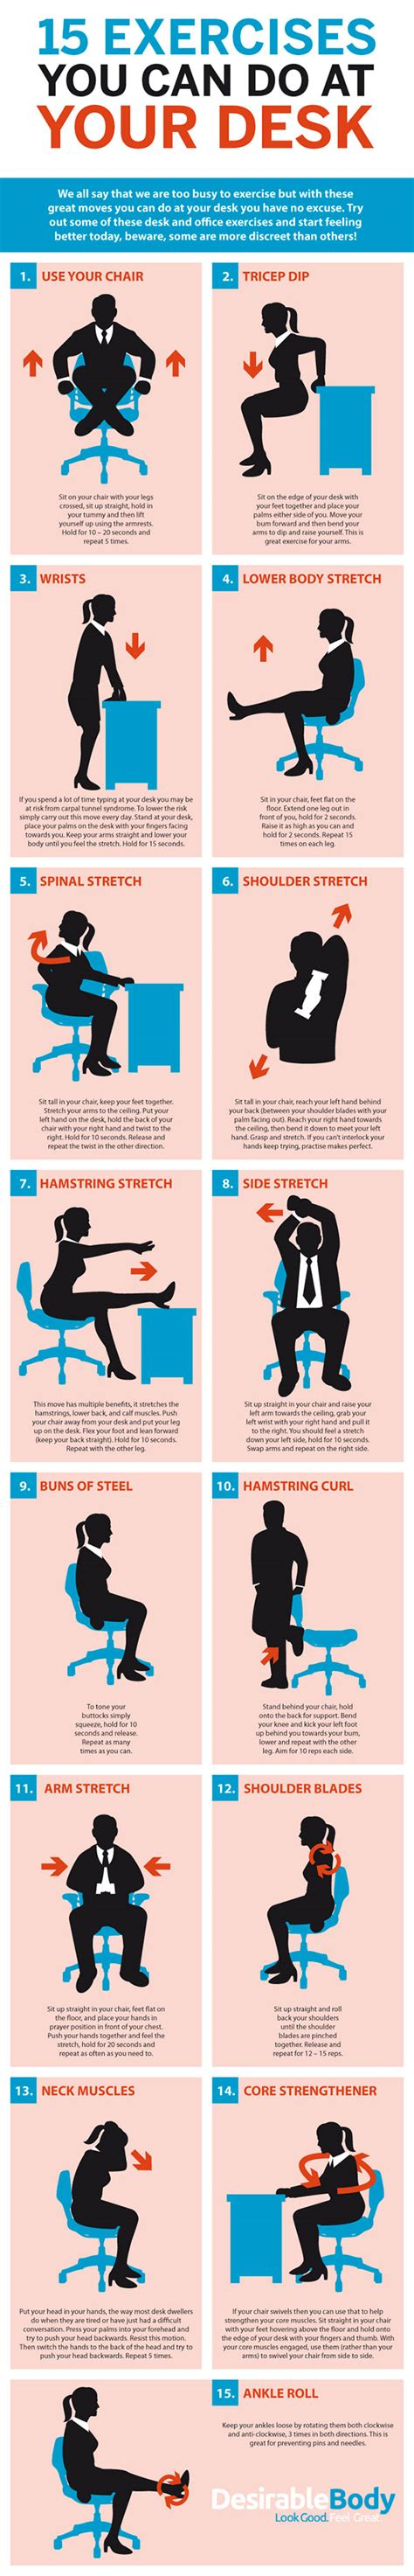 Office Workouts At Desk Deskercise 15 Simple Exercises You Can Do At Your Desk Diy Genius